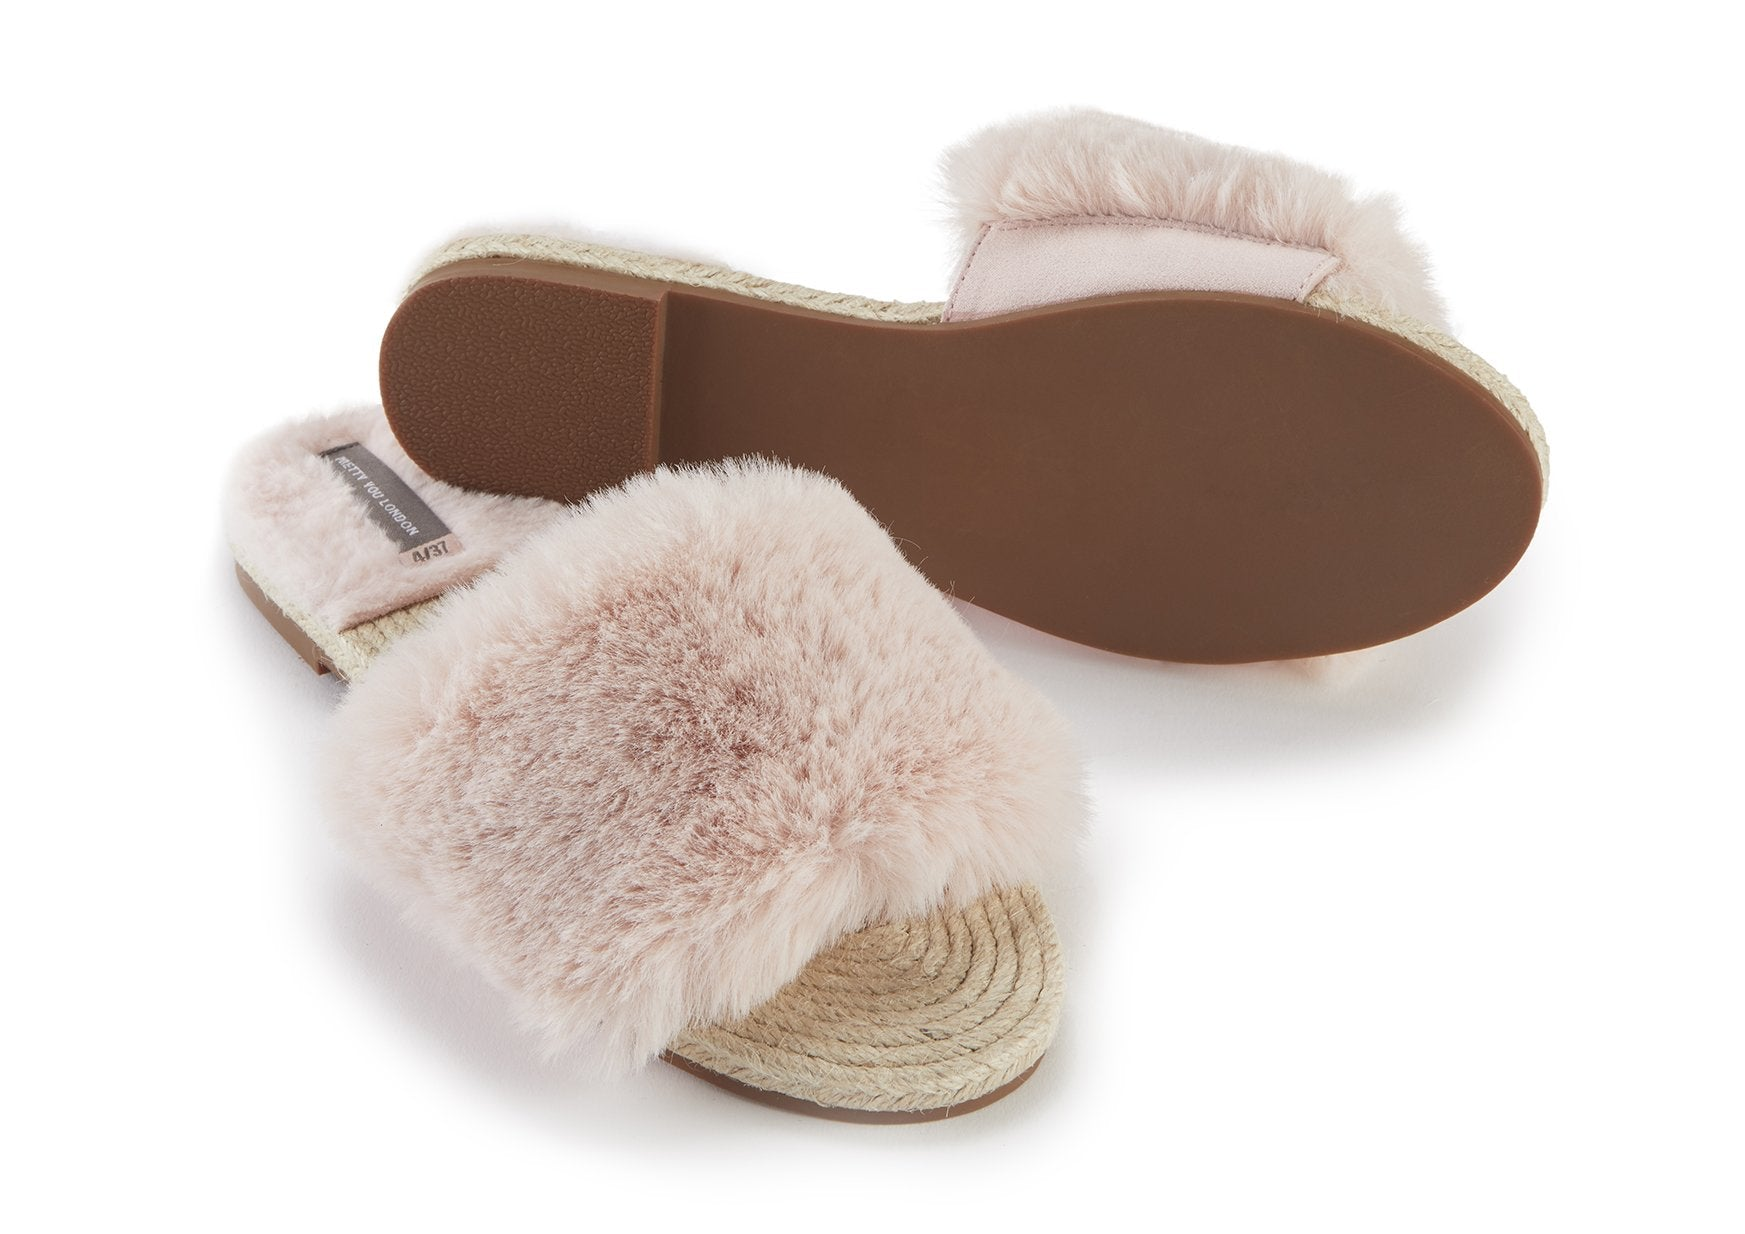 b89e825c05b2 Womens Pink Sliders Sandals from Pretty You London – Pretty You ...